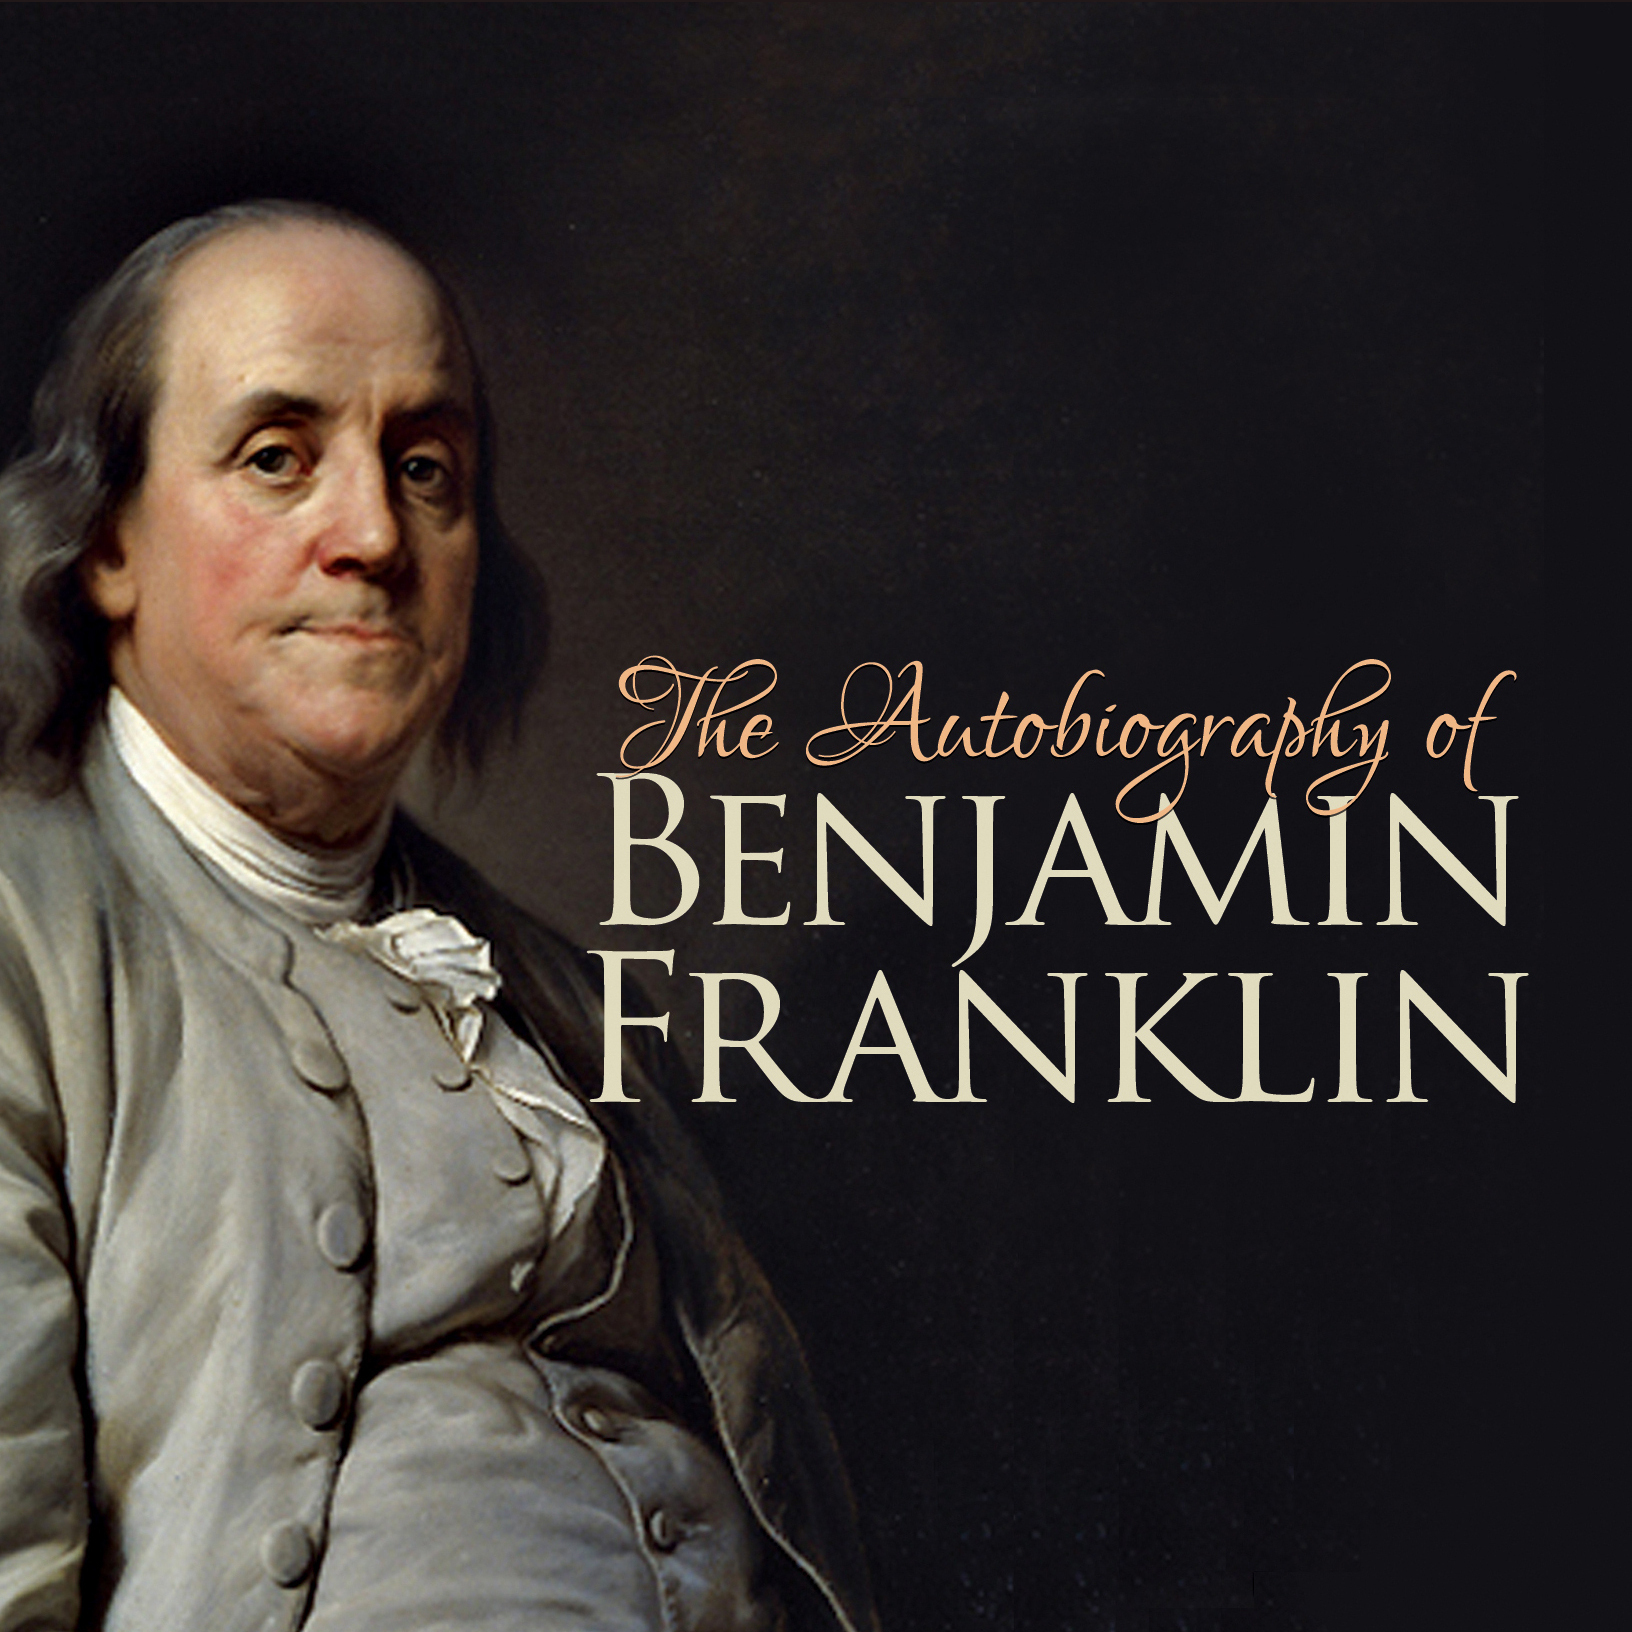 the autobiography of benjamin franklin John j miller is joined by kevin slack to discuss benjamin franklin's 'the autobiography of benjamin franklin'.